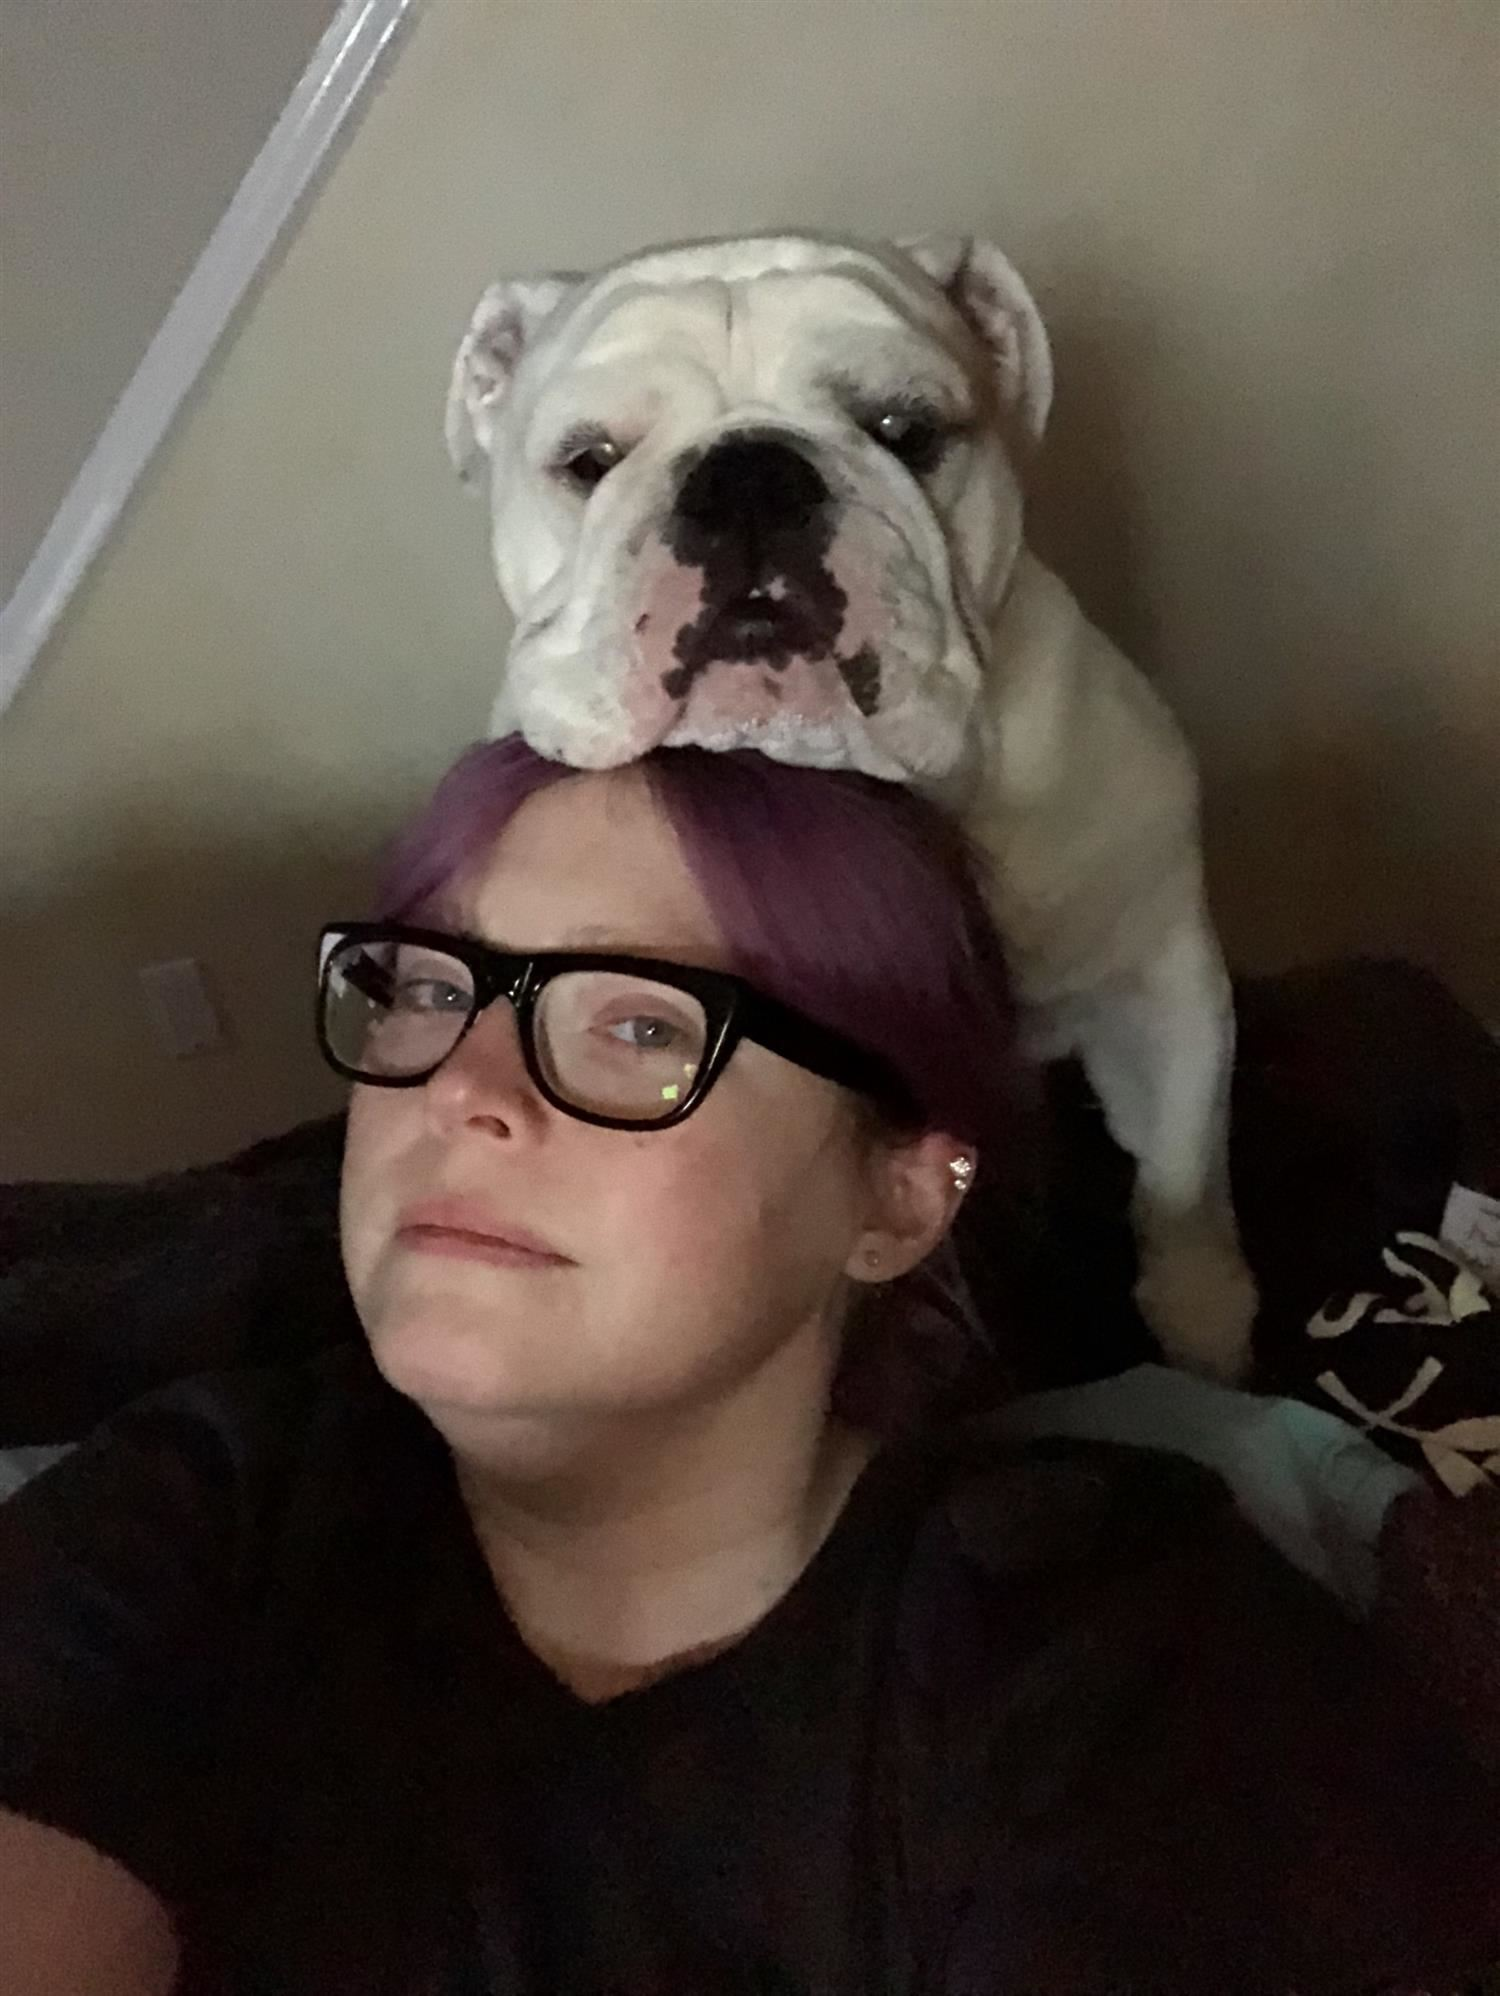 picture of white bulldog resting its head on its human's head